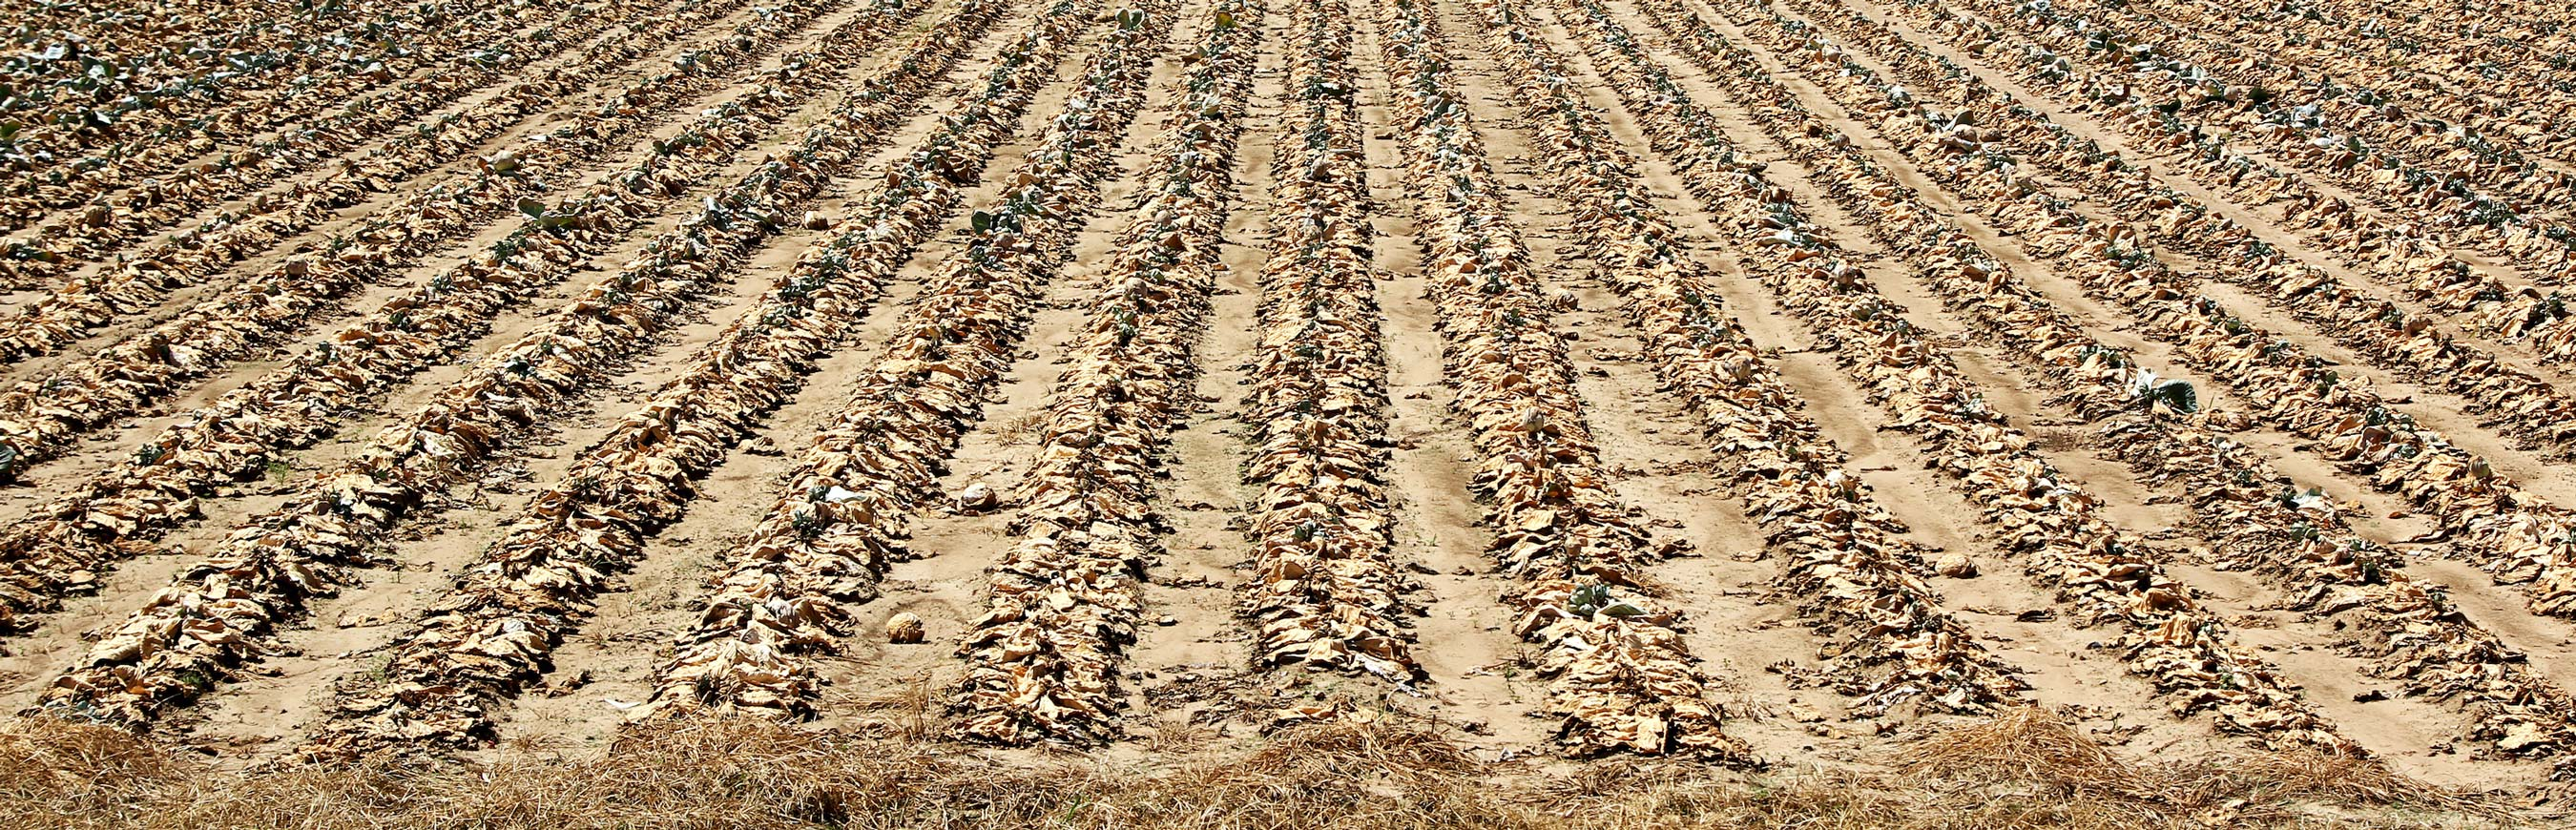 A field of drought-damaged crops